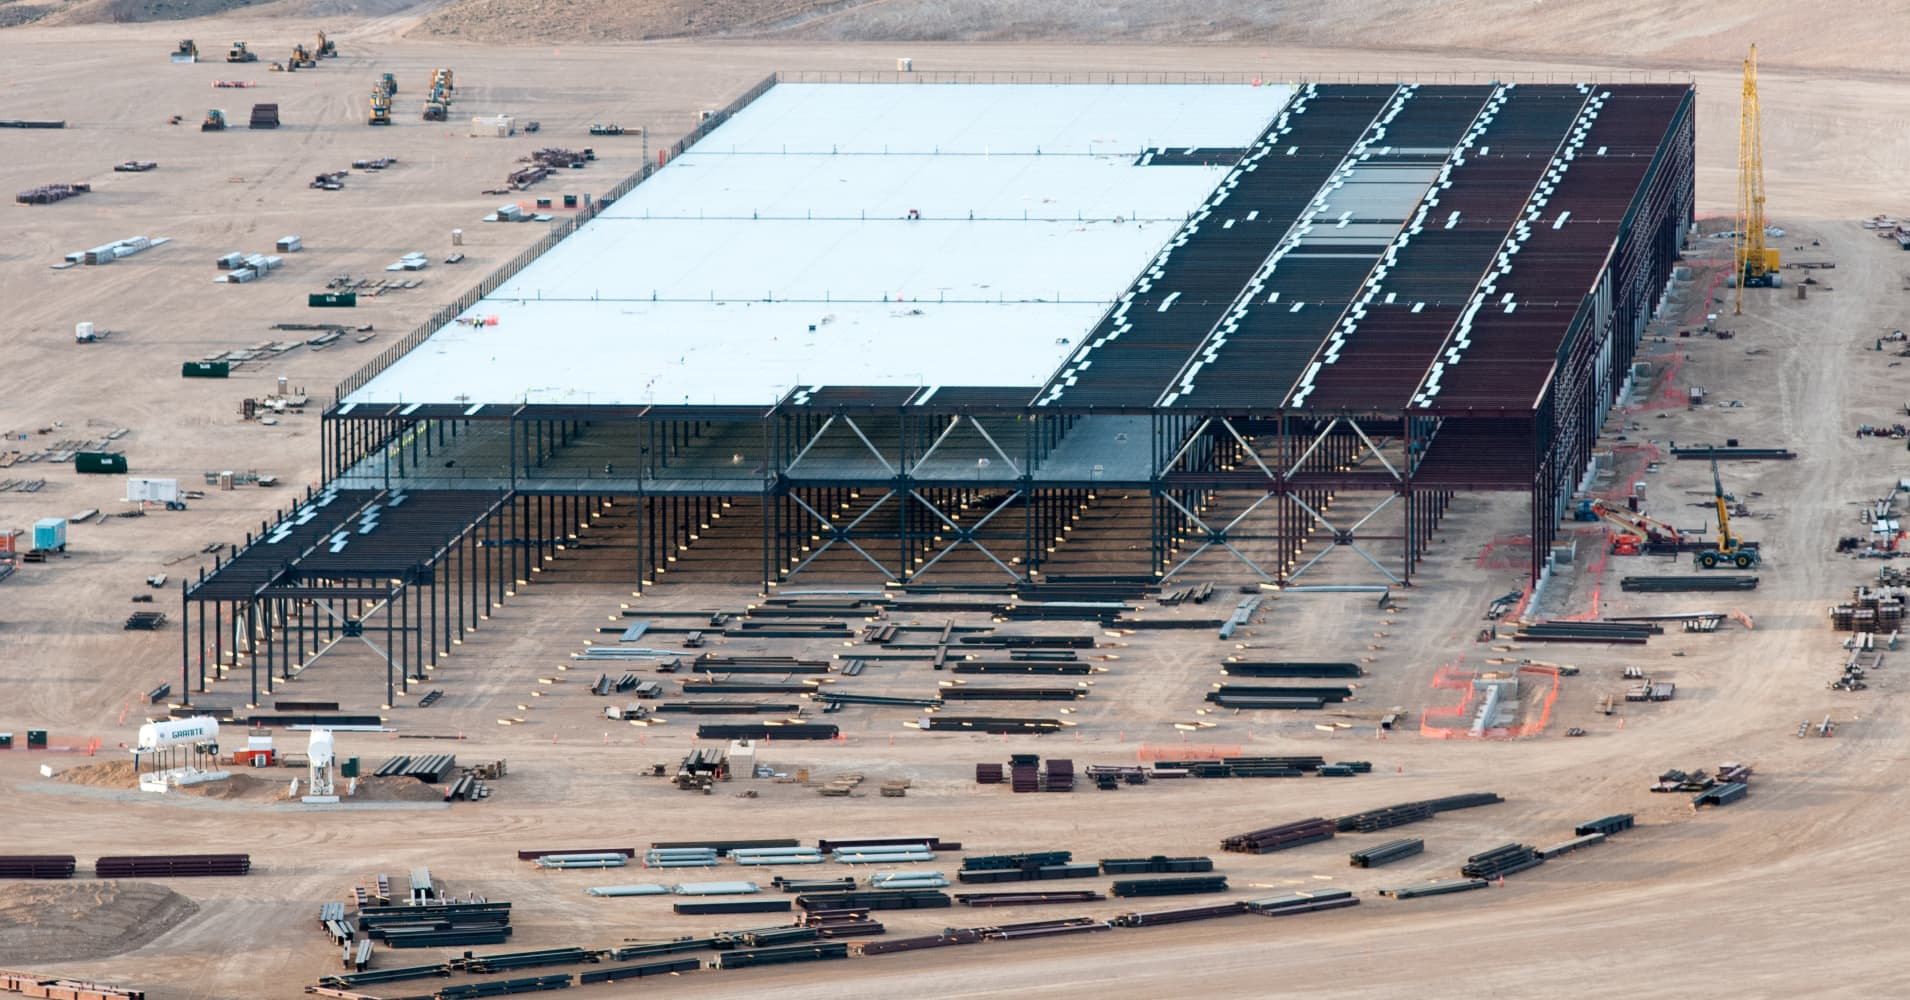 Tesla will power its Gigafactory with a 70-megawatt solar farm